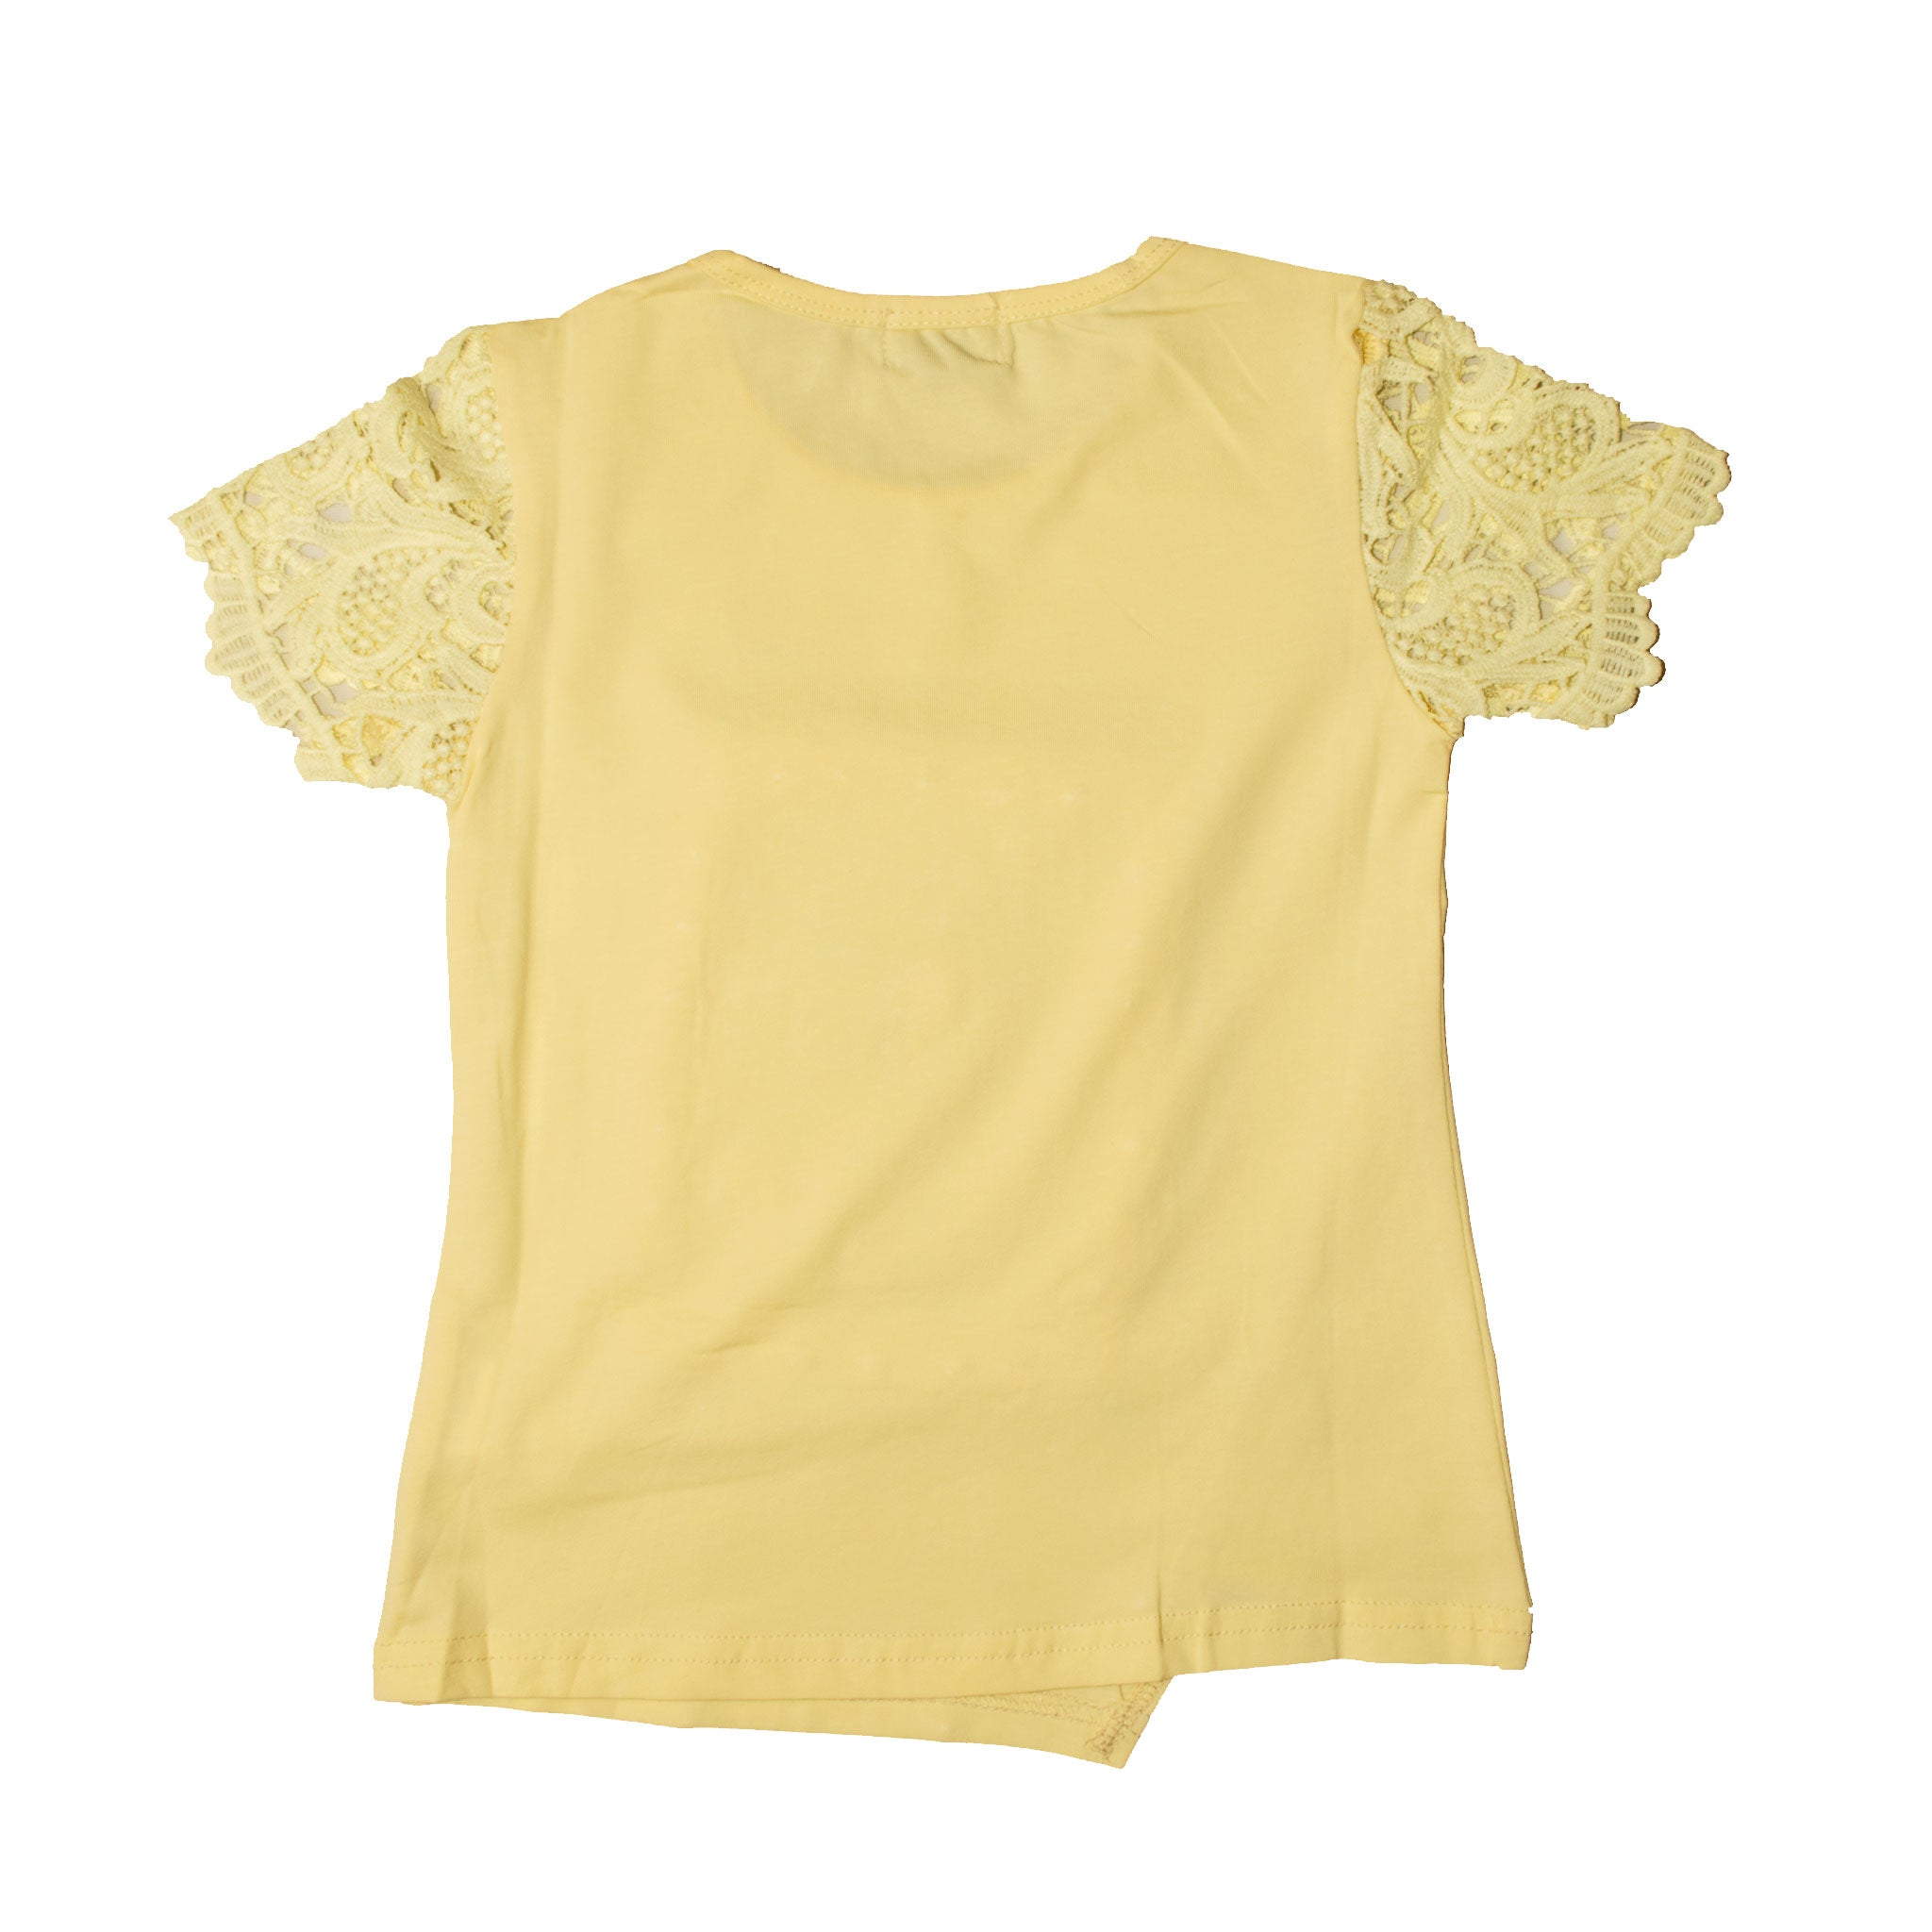 GIRL'S S/S TEE-YELLOW-SSSS20KG-2202 - Export Mall